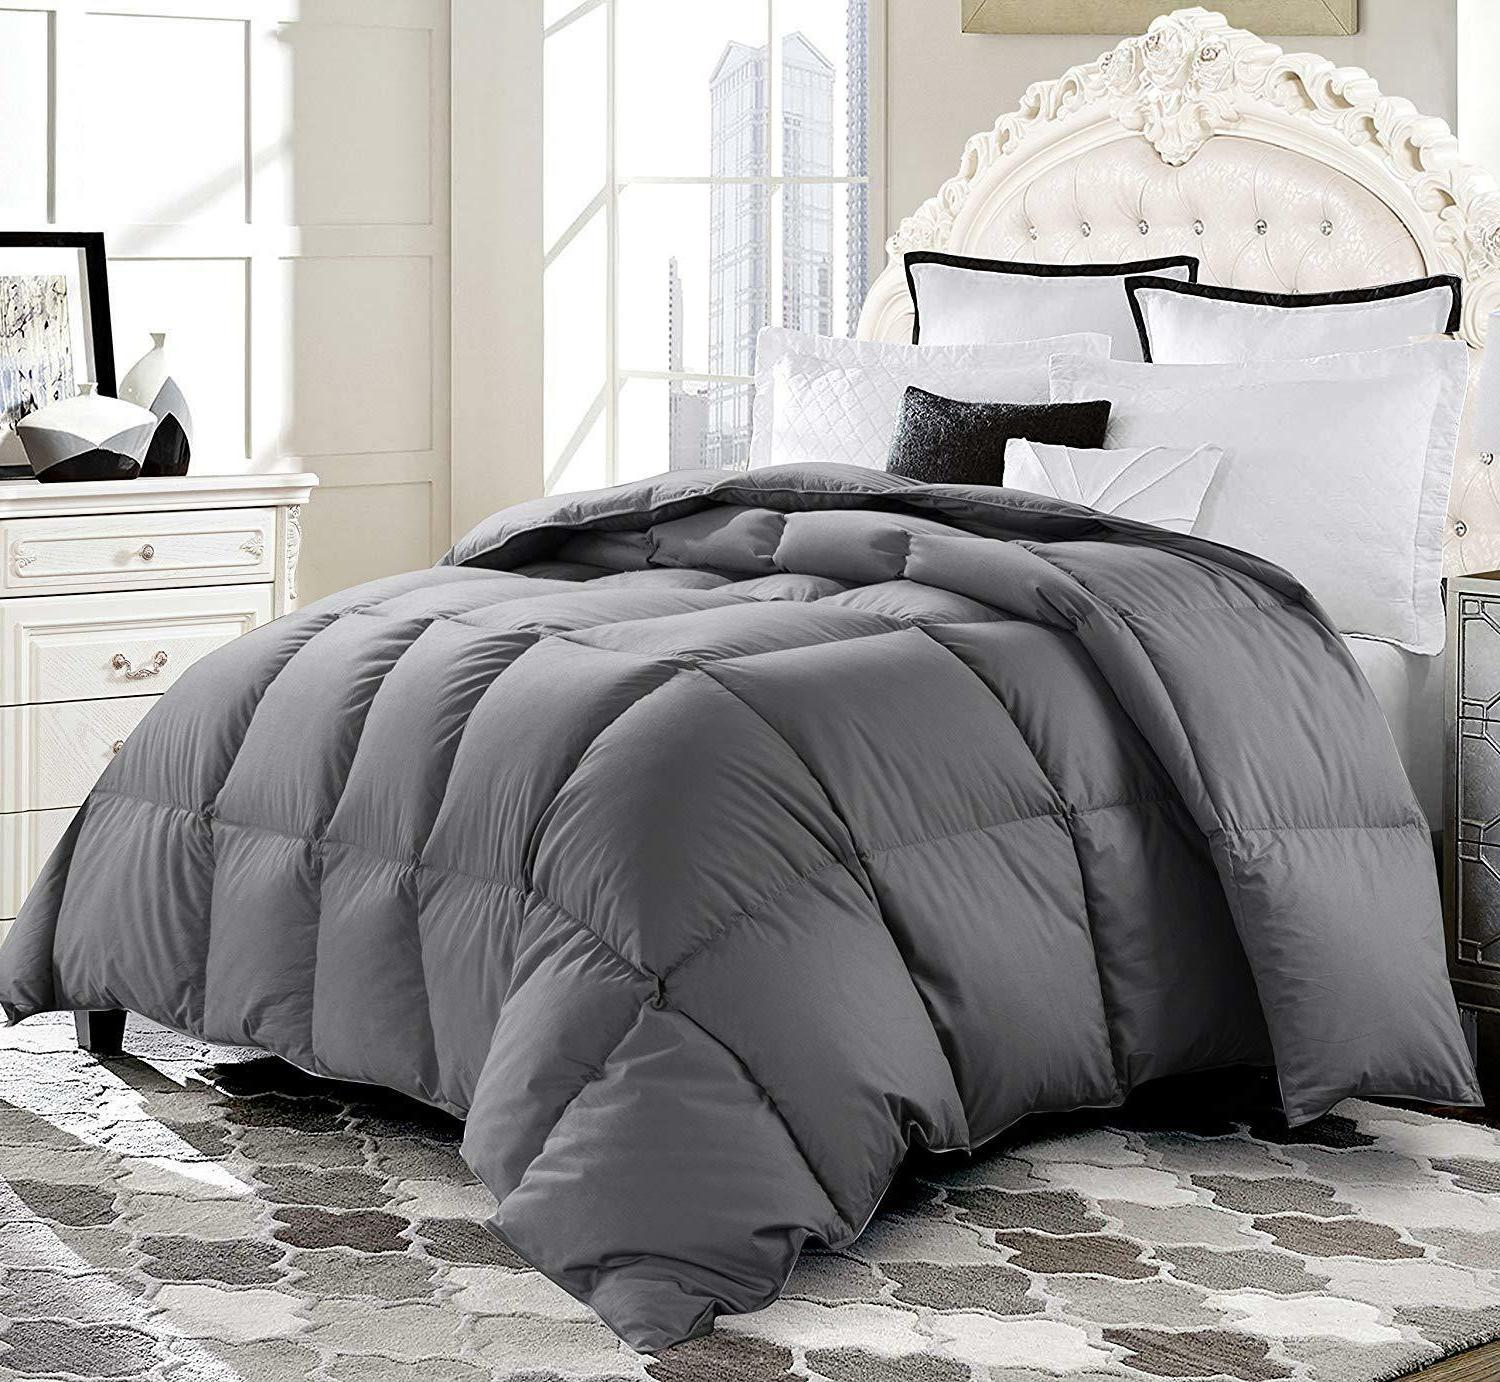 Deluxe 1200 Down Cotton, Down-like properties